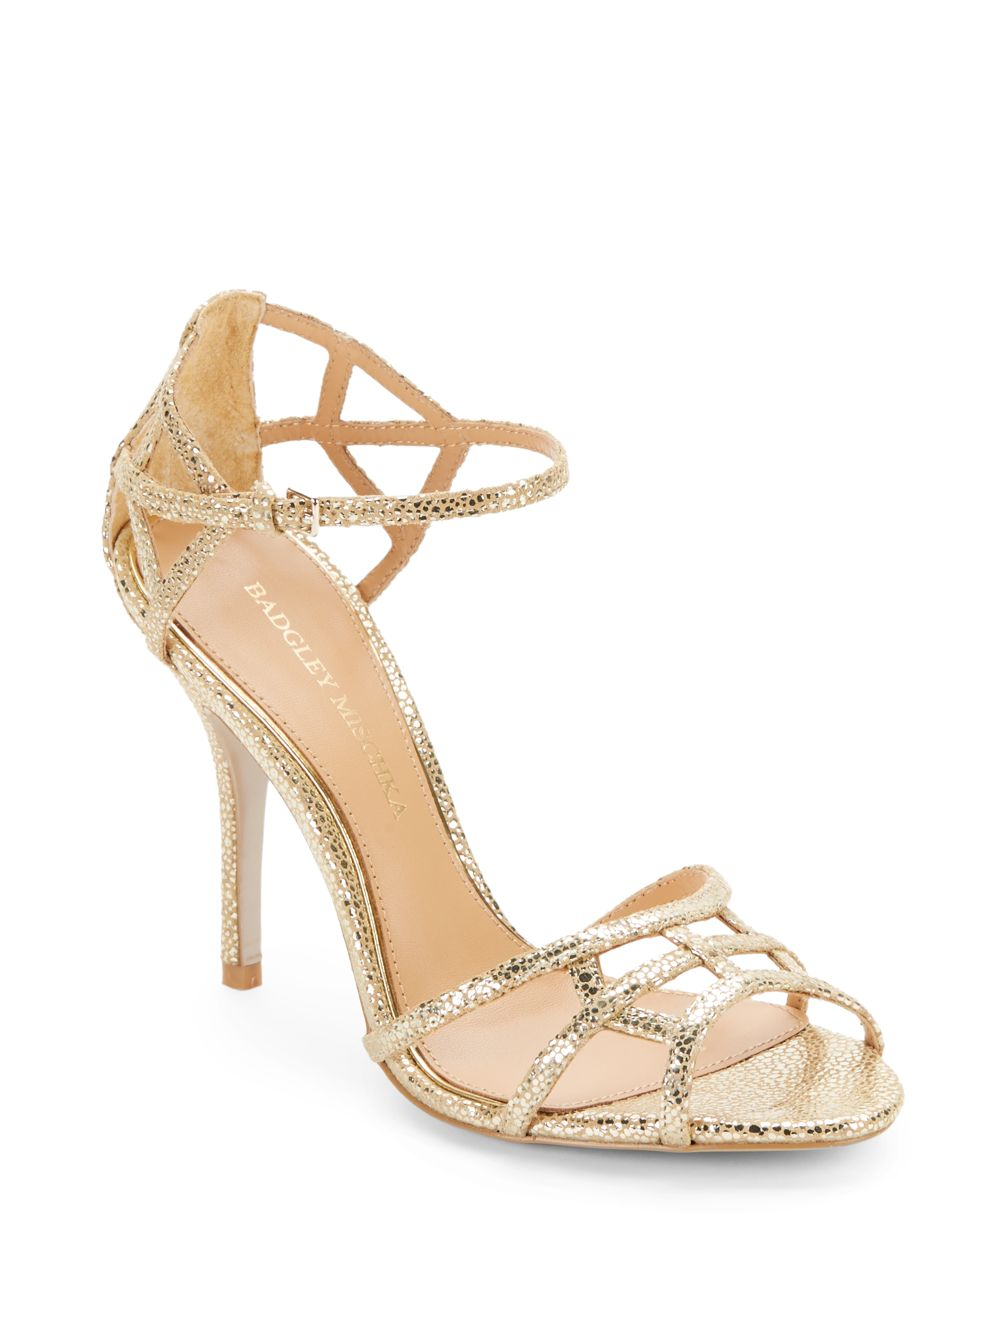 Lyst - Badgley mischka Kerrington Metallic Leather Strappy Sandals ...